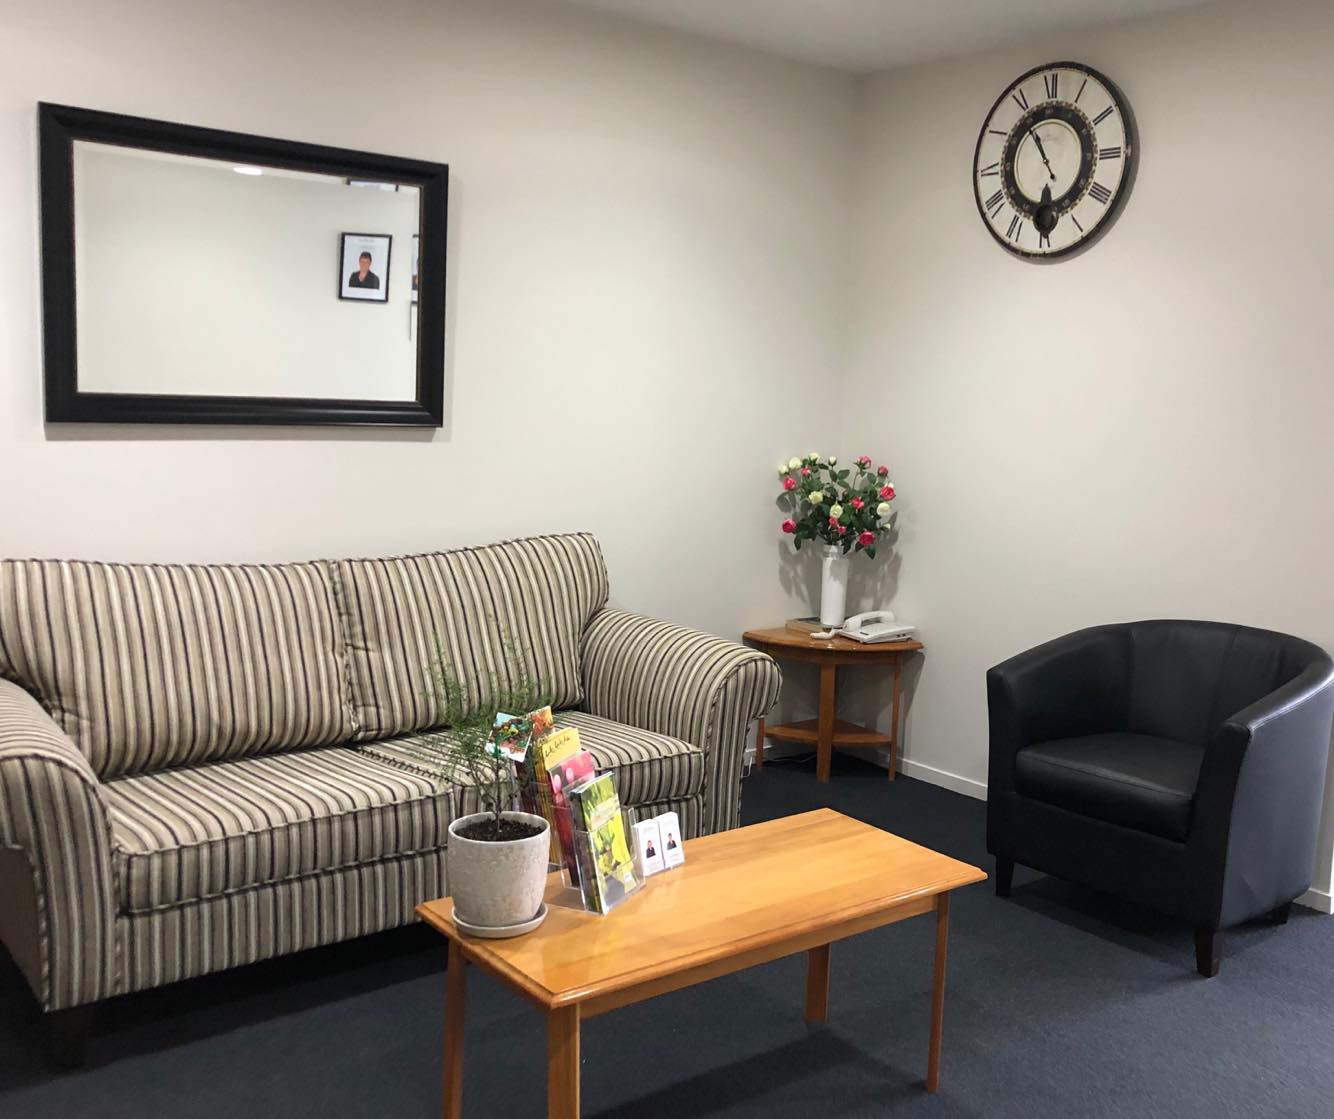 Tararua Funerals Office reception room